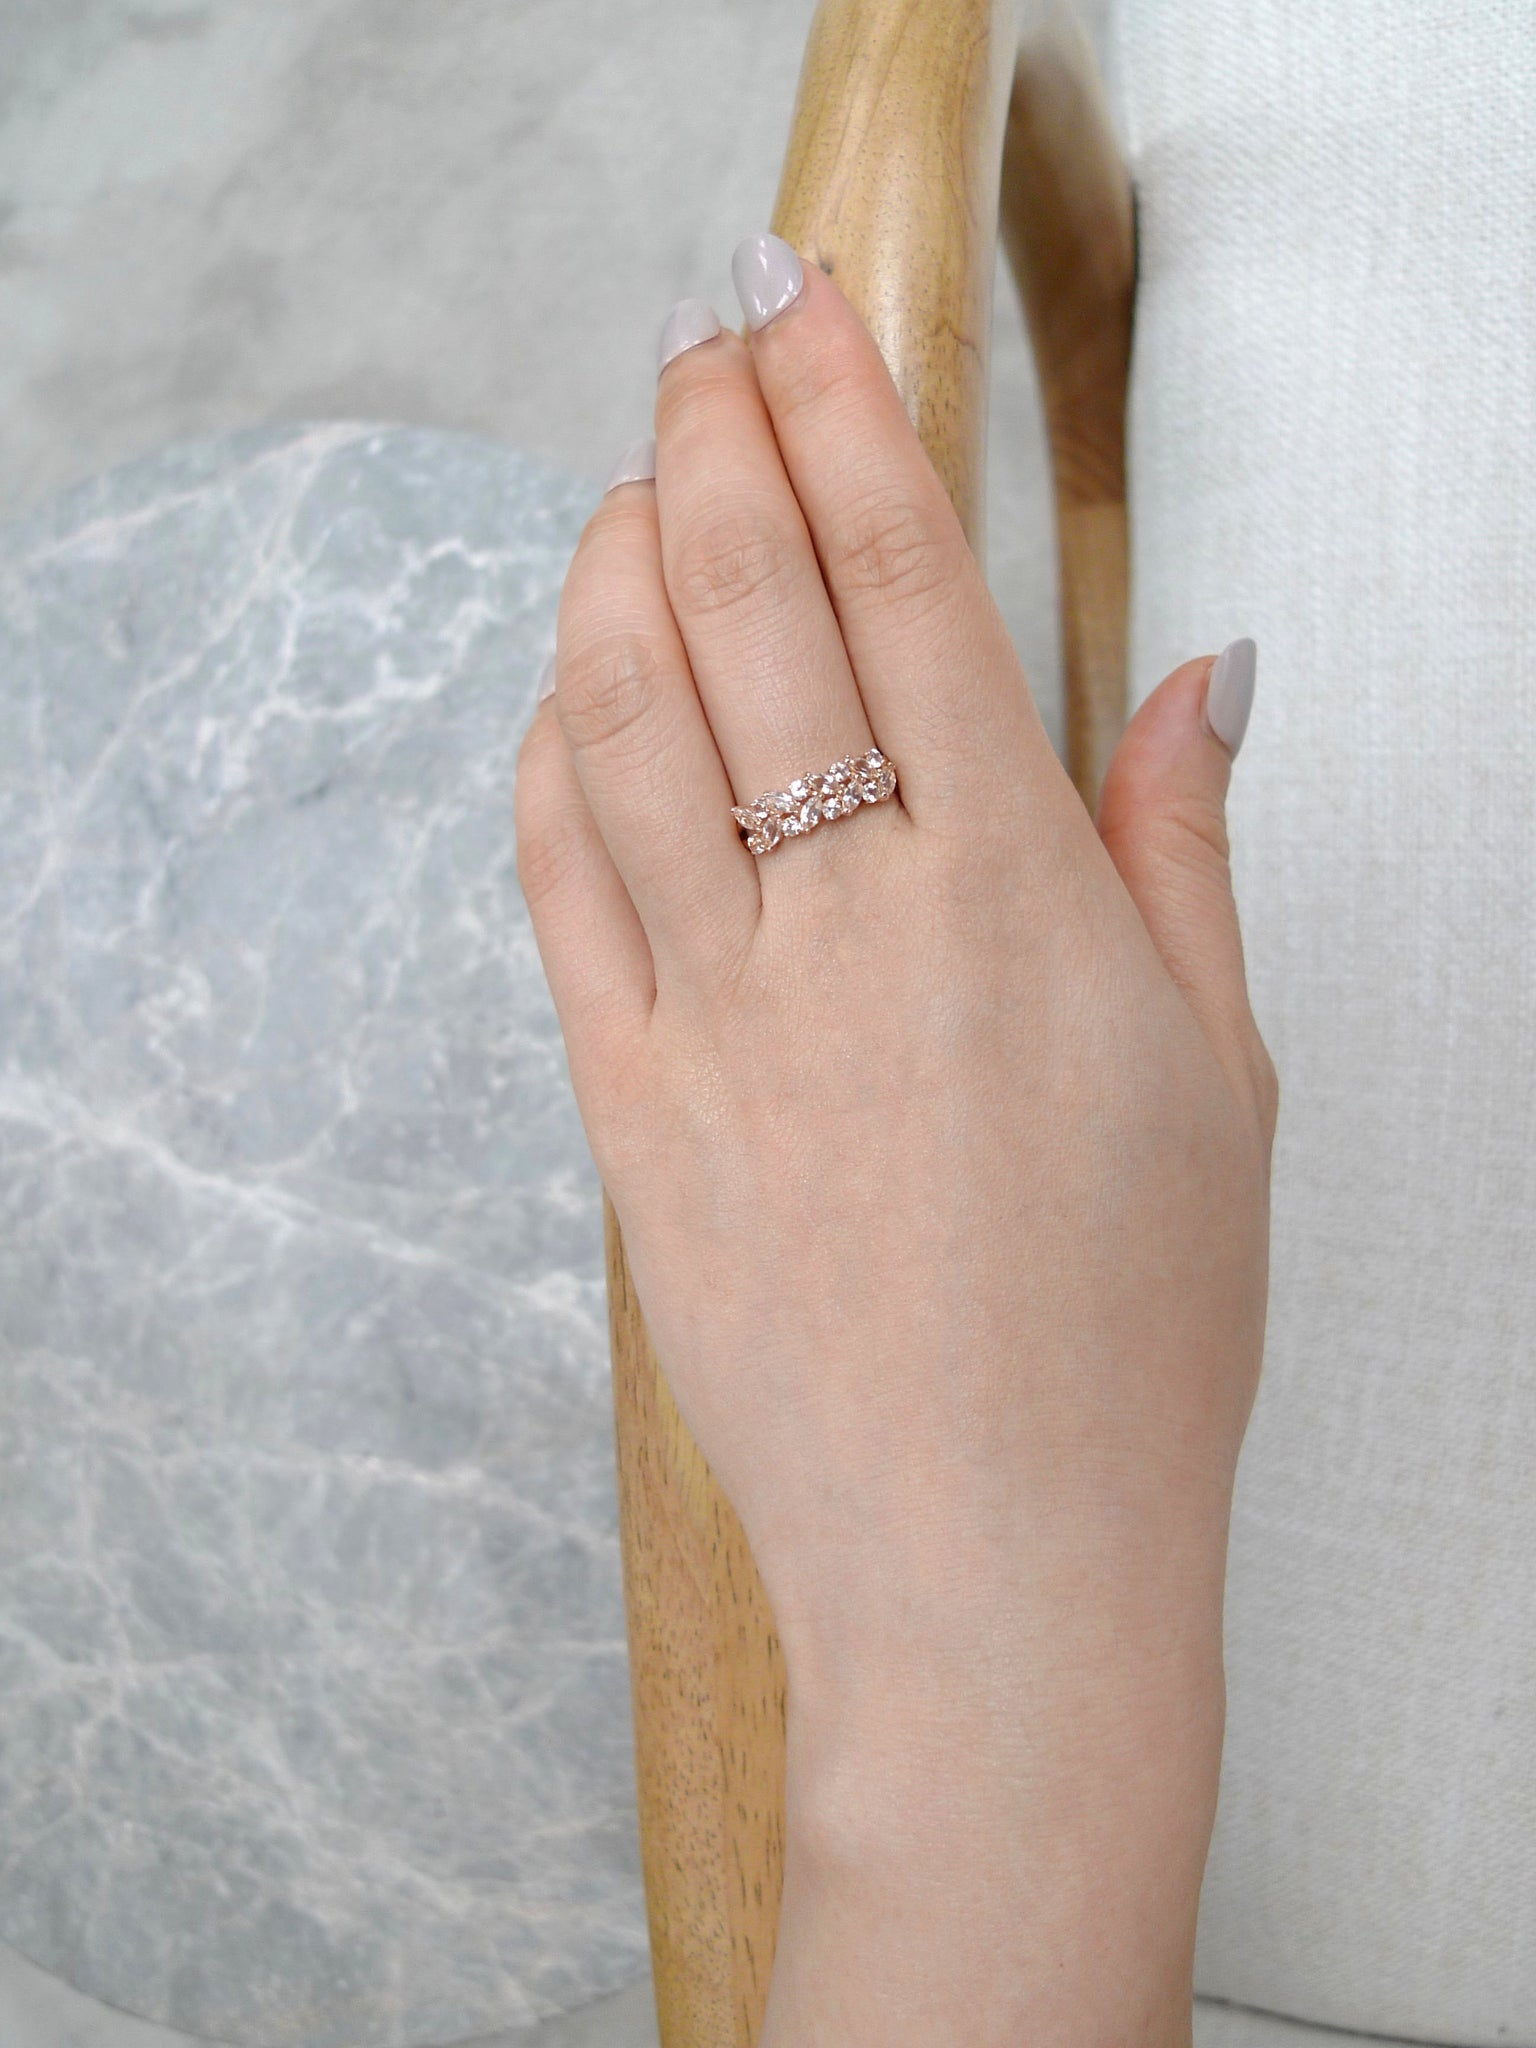 Champagne Marquise Morganite Ring in 14K Rose Gold - HN JEWELRY